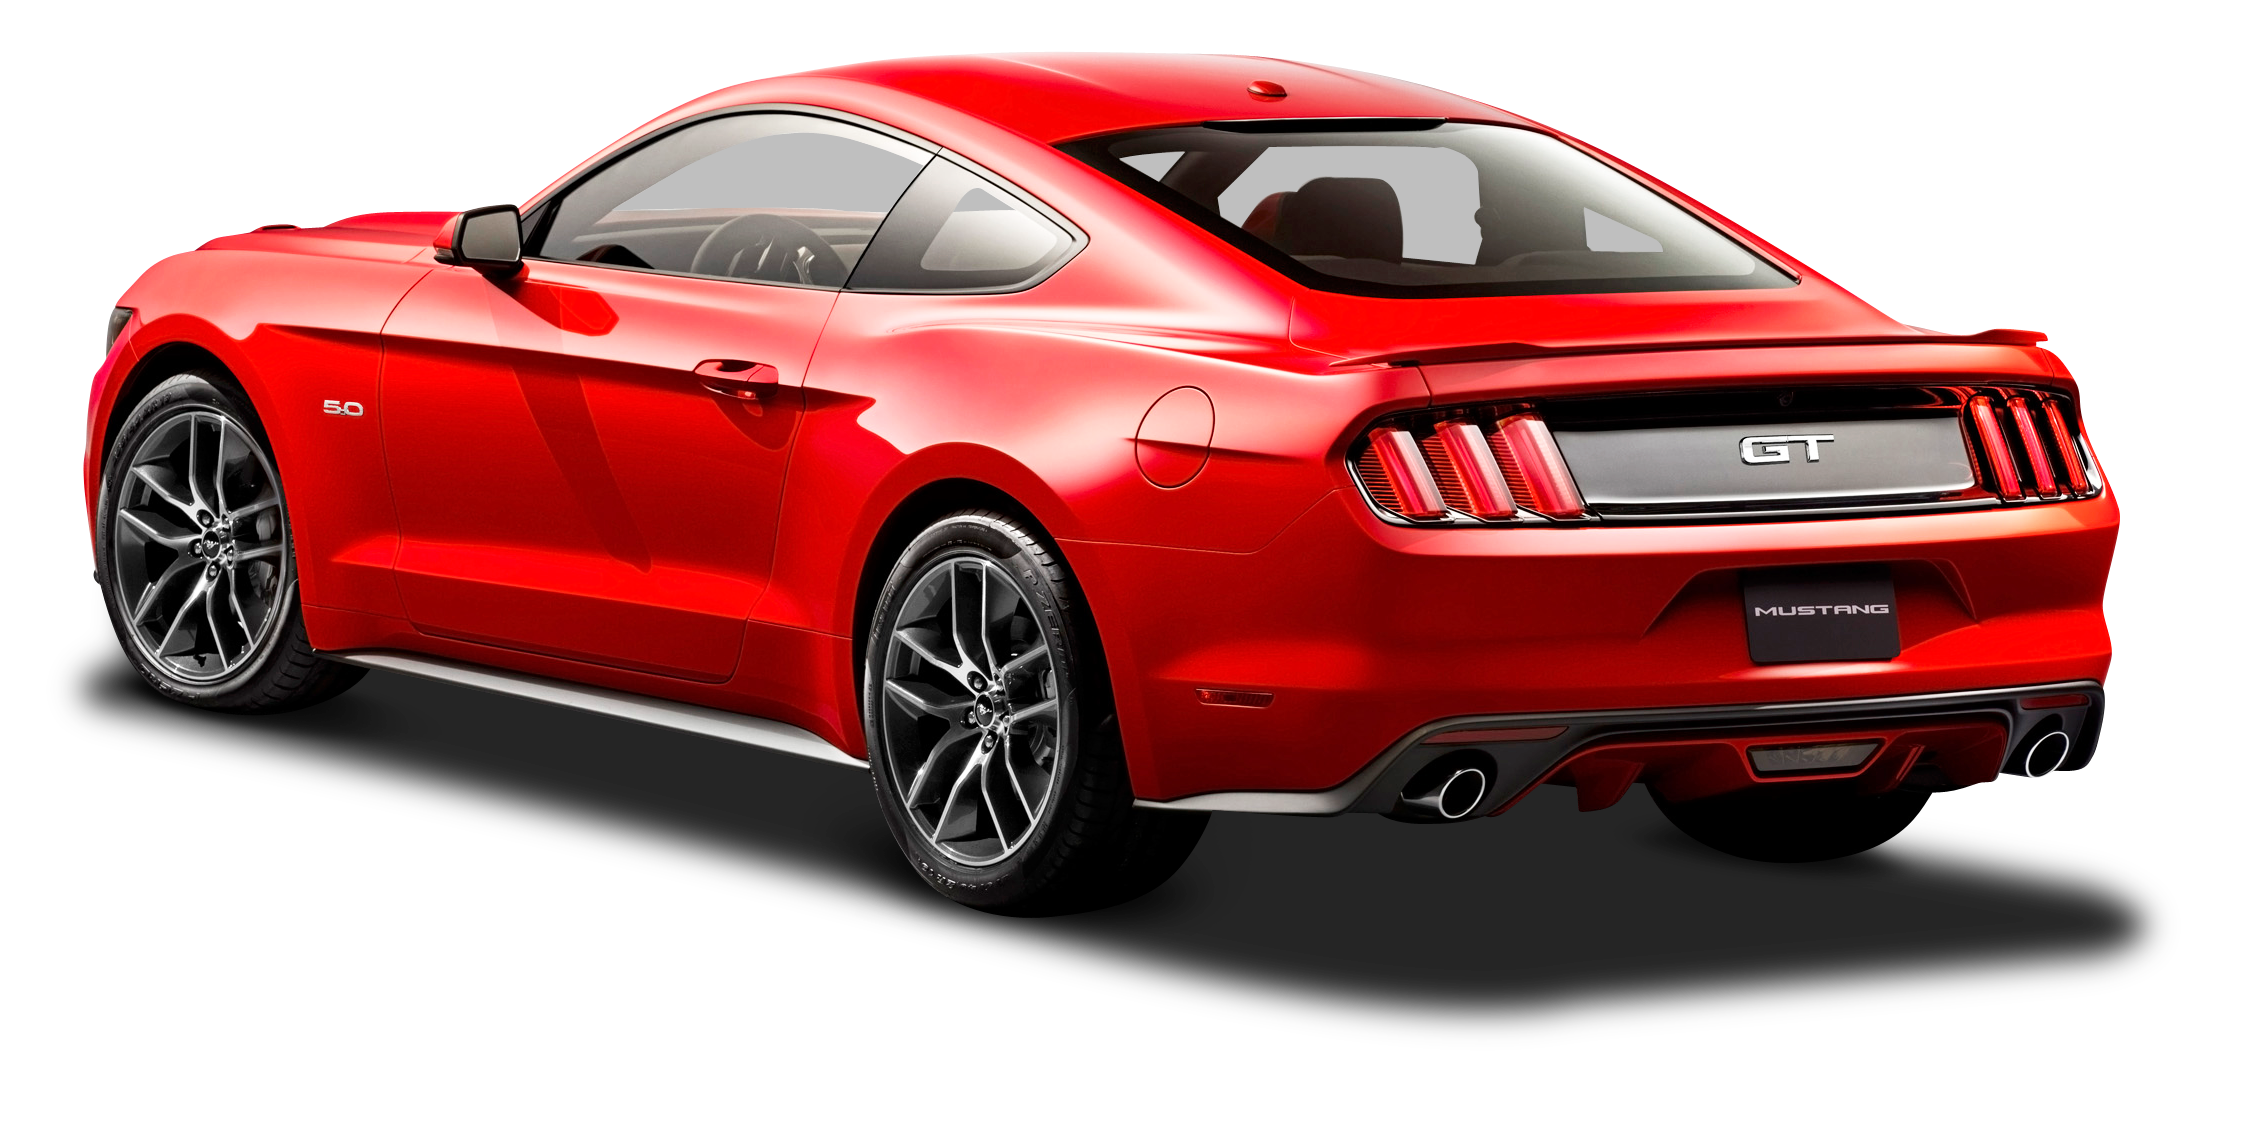 Back of car png. Ford mustang red side